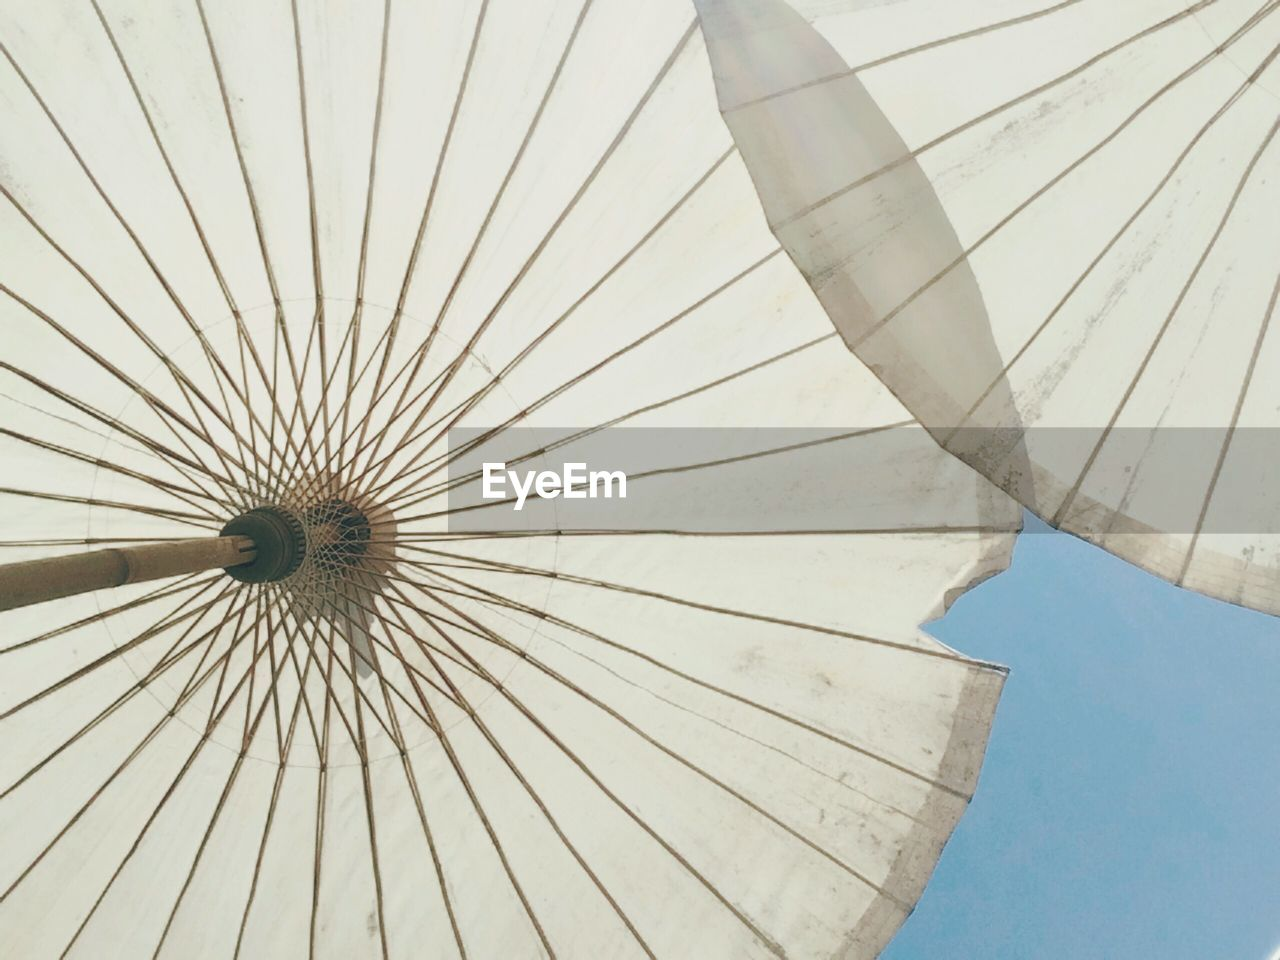 pattern, protection, umbrella, day, security, parasol, low angle view, no people, safety, close-up, outdoors, shelter, sky, design, nature, architecture, sunshade, blue